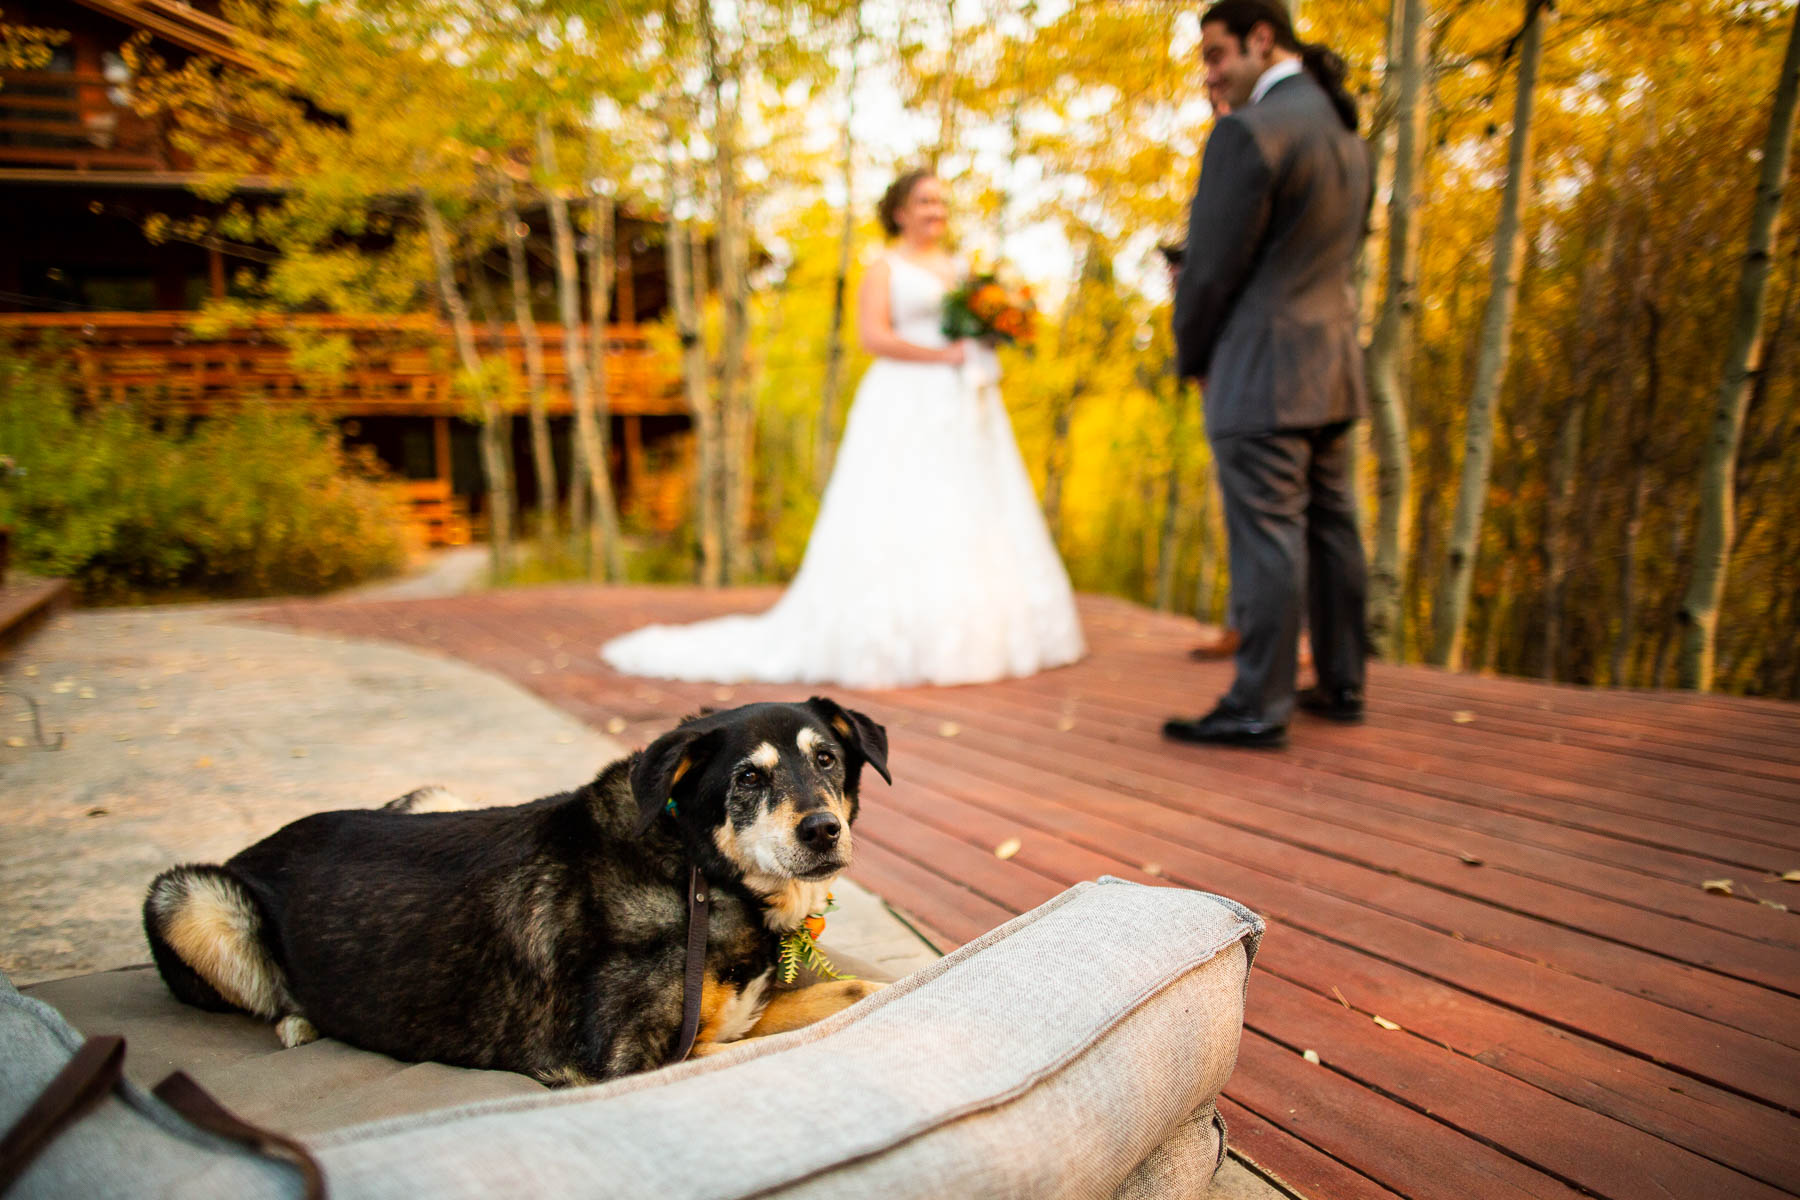 Wild Basin Lodge Wedding Photographers - Allenspark, CO | the dog and her dog bed came out to the ceremony site on the beautiful outdoor deck